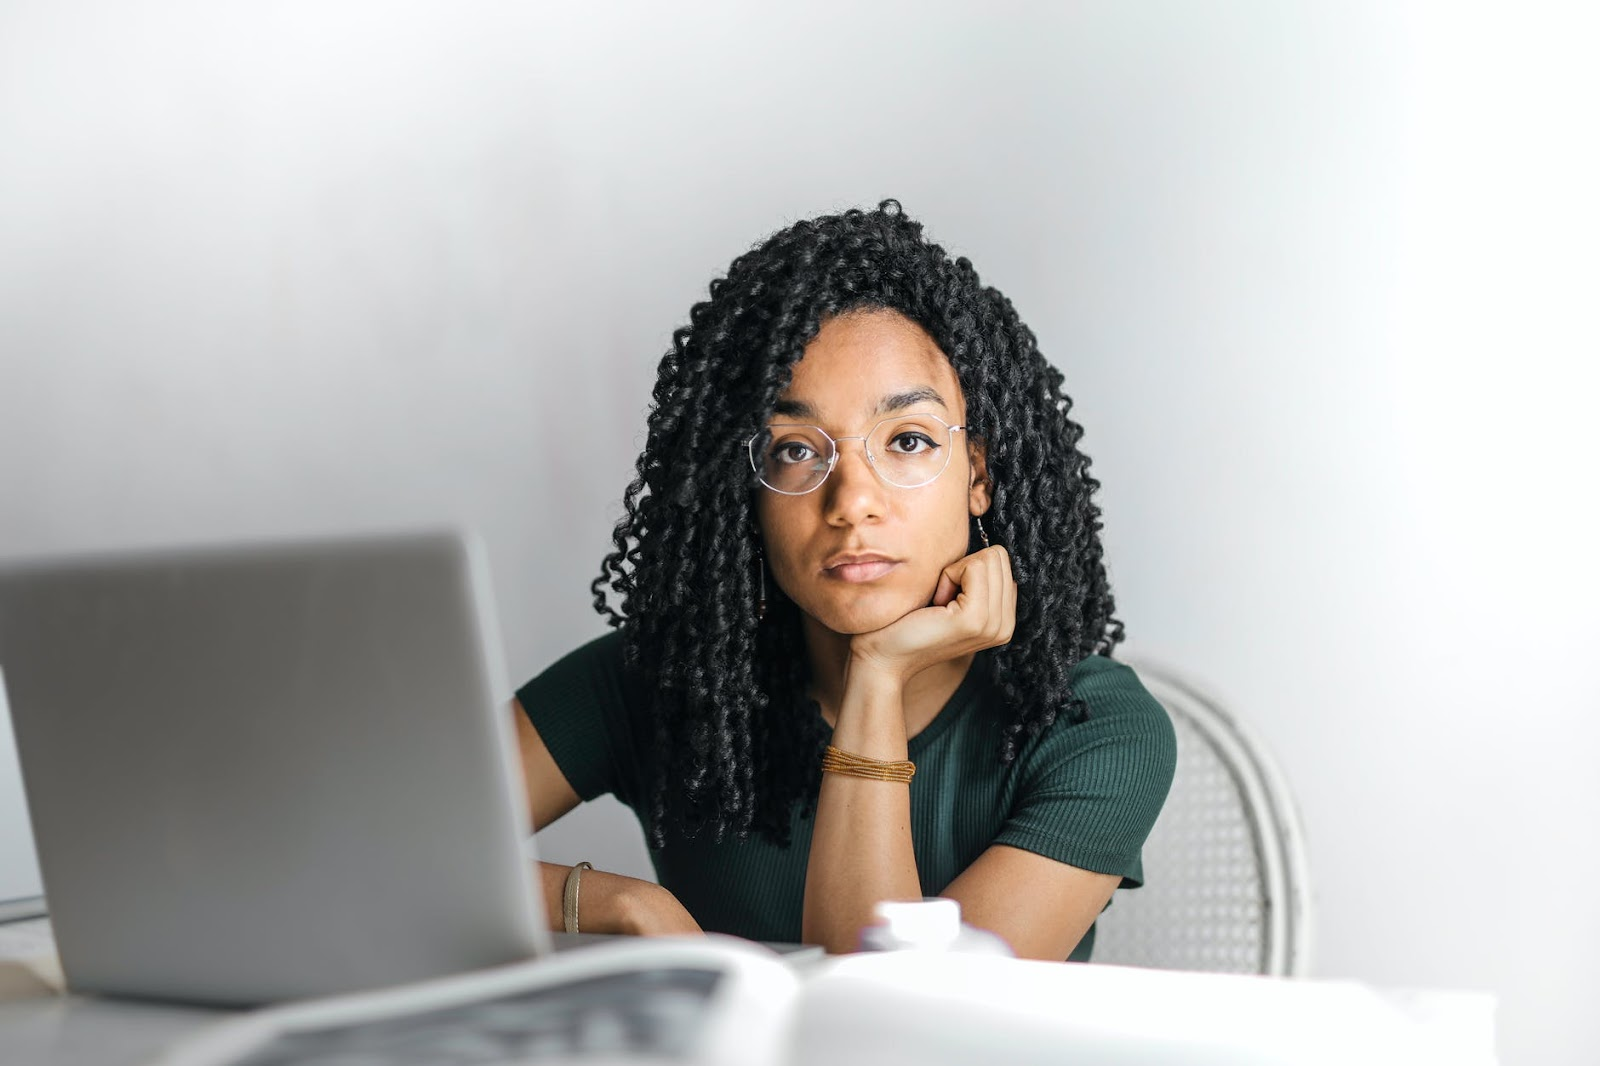 serious-ethnic-young-woman-using-laptop-at-home- contemplating small business preparation basics